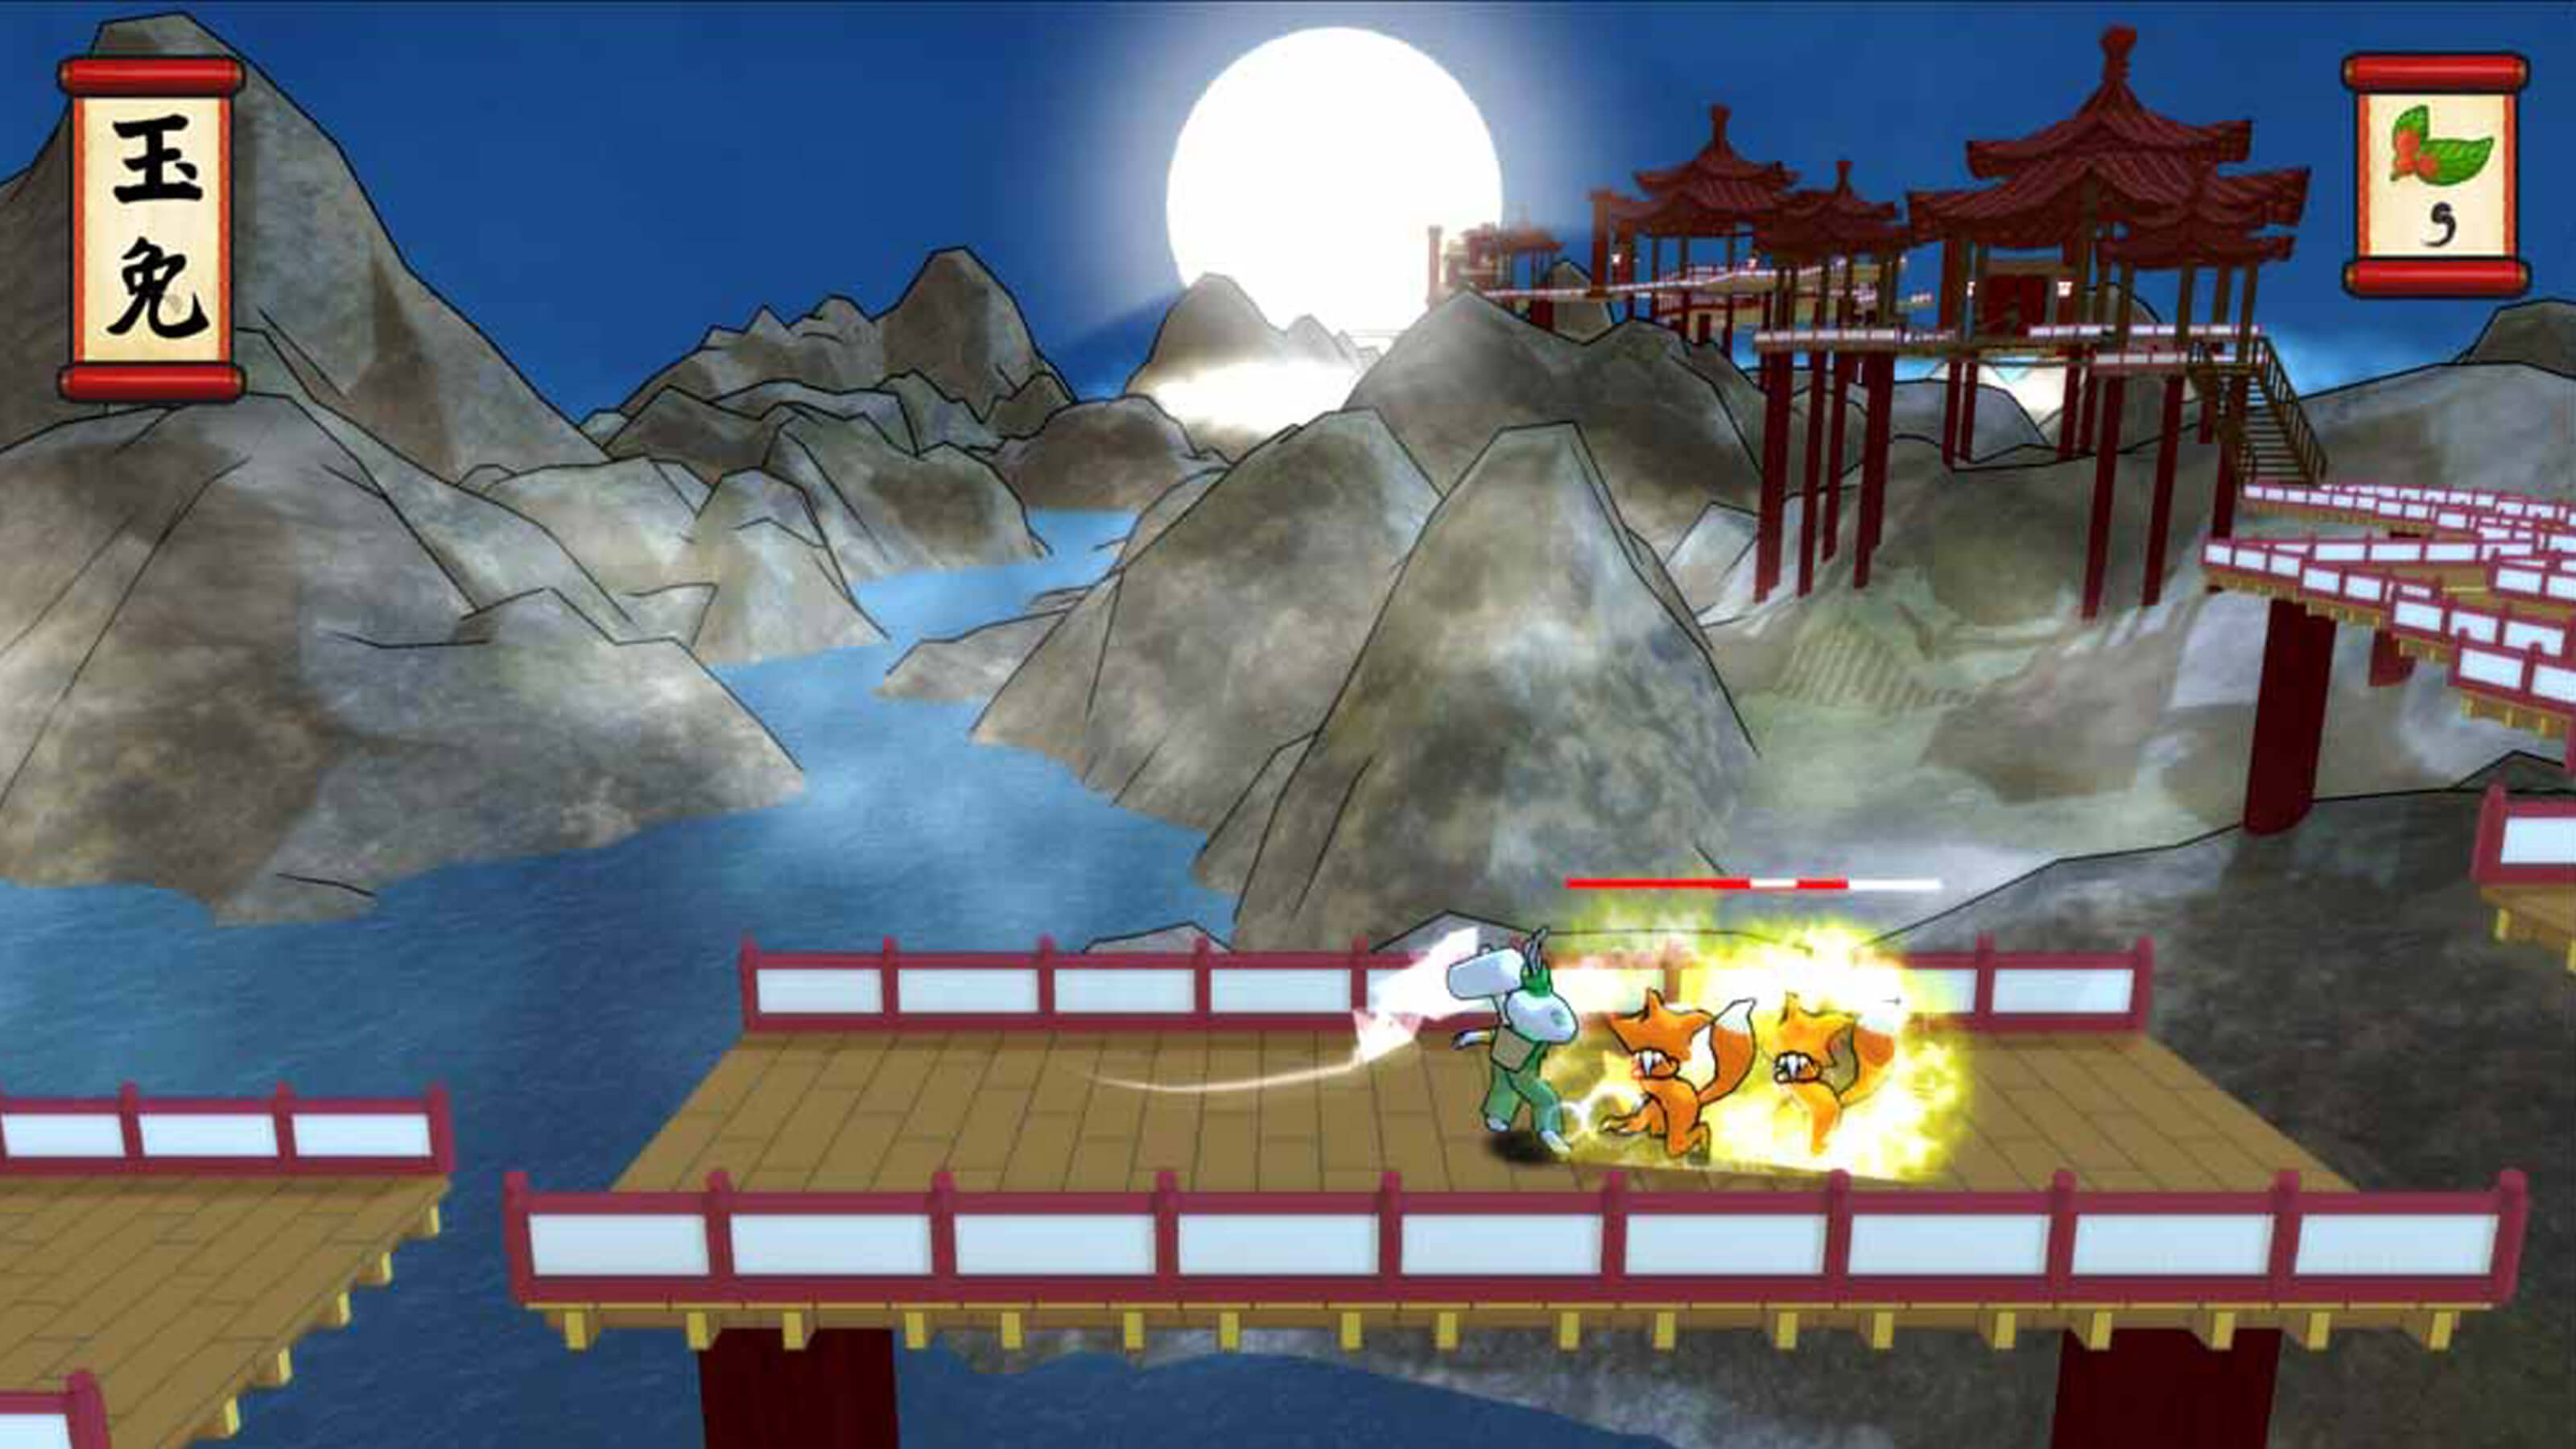 The moon rabbit battles two fox enemies on a bridge with a river, mountains, and a bright moon in the background